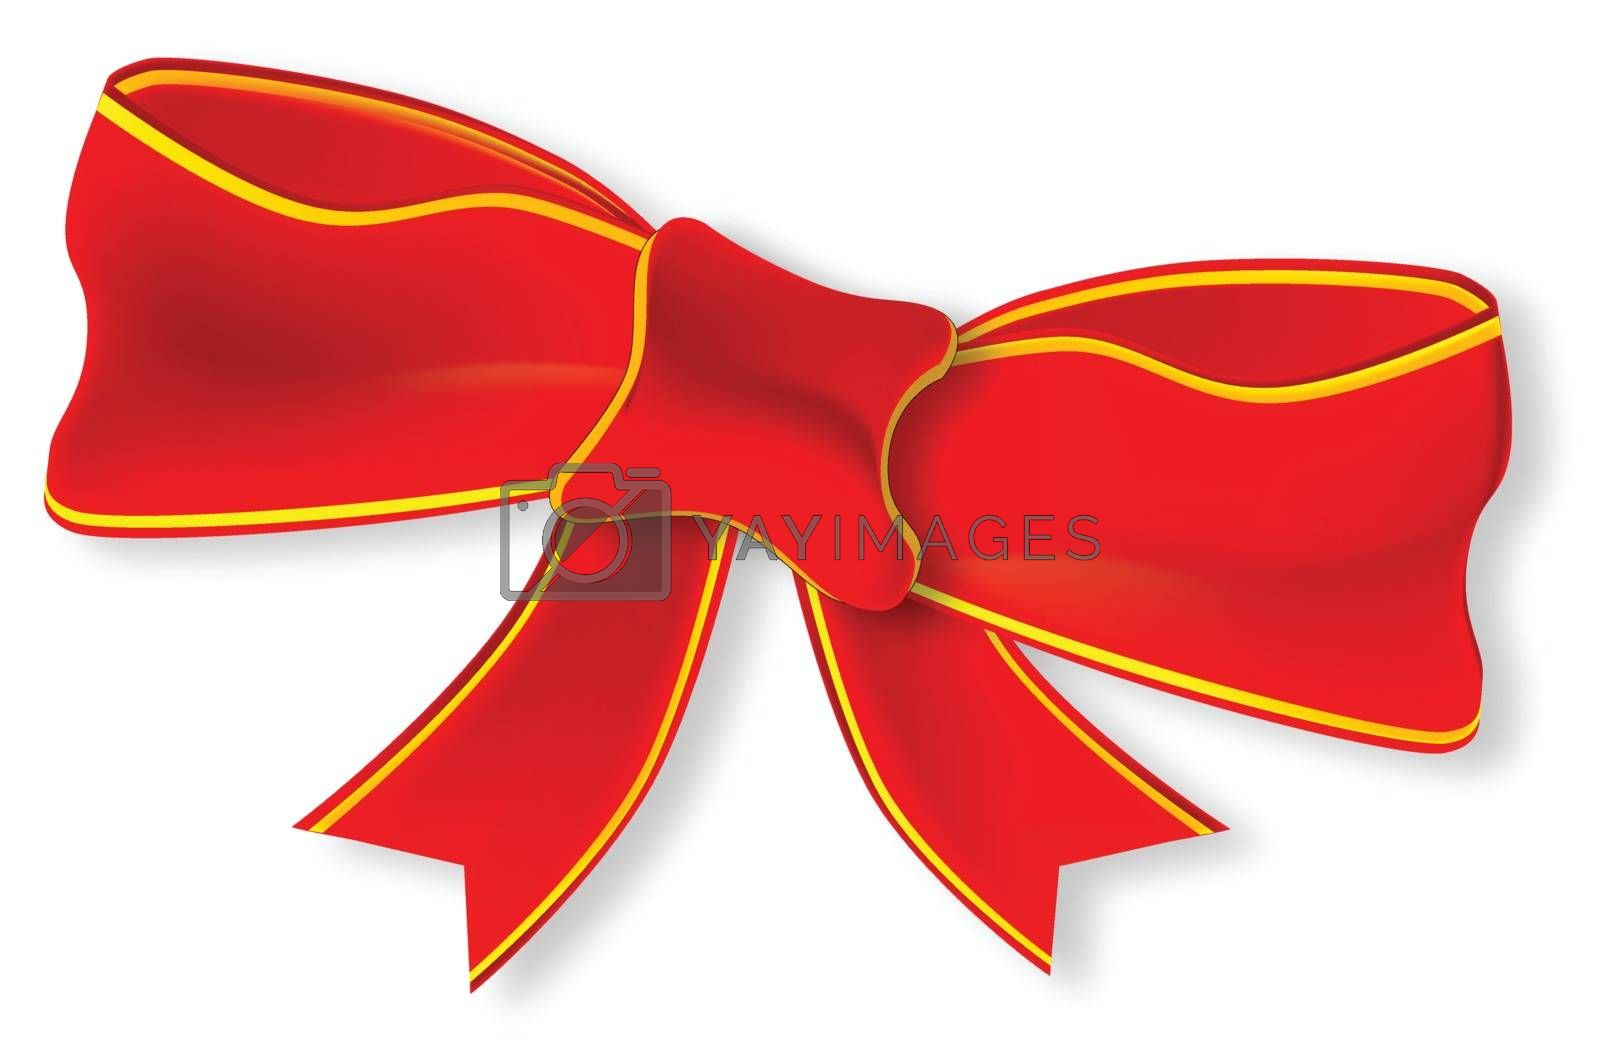 A red satin or silk Christmas ribbon and bow